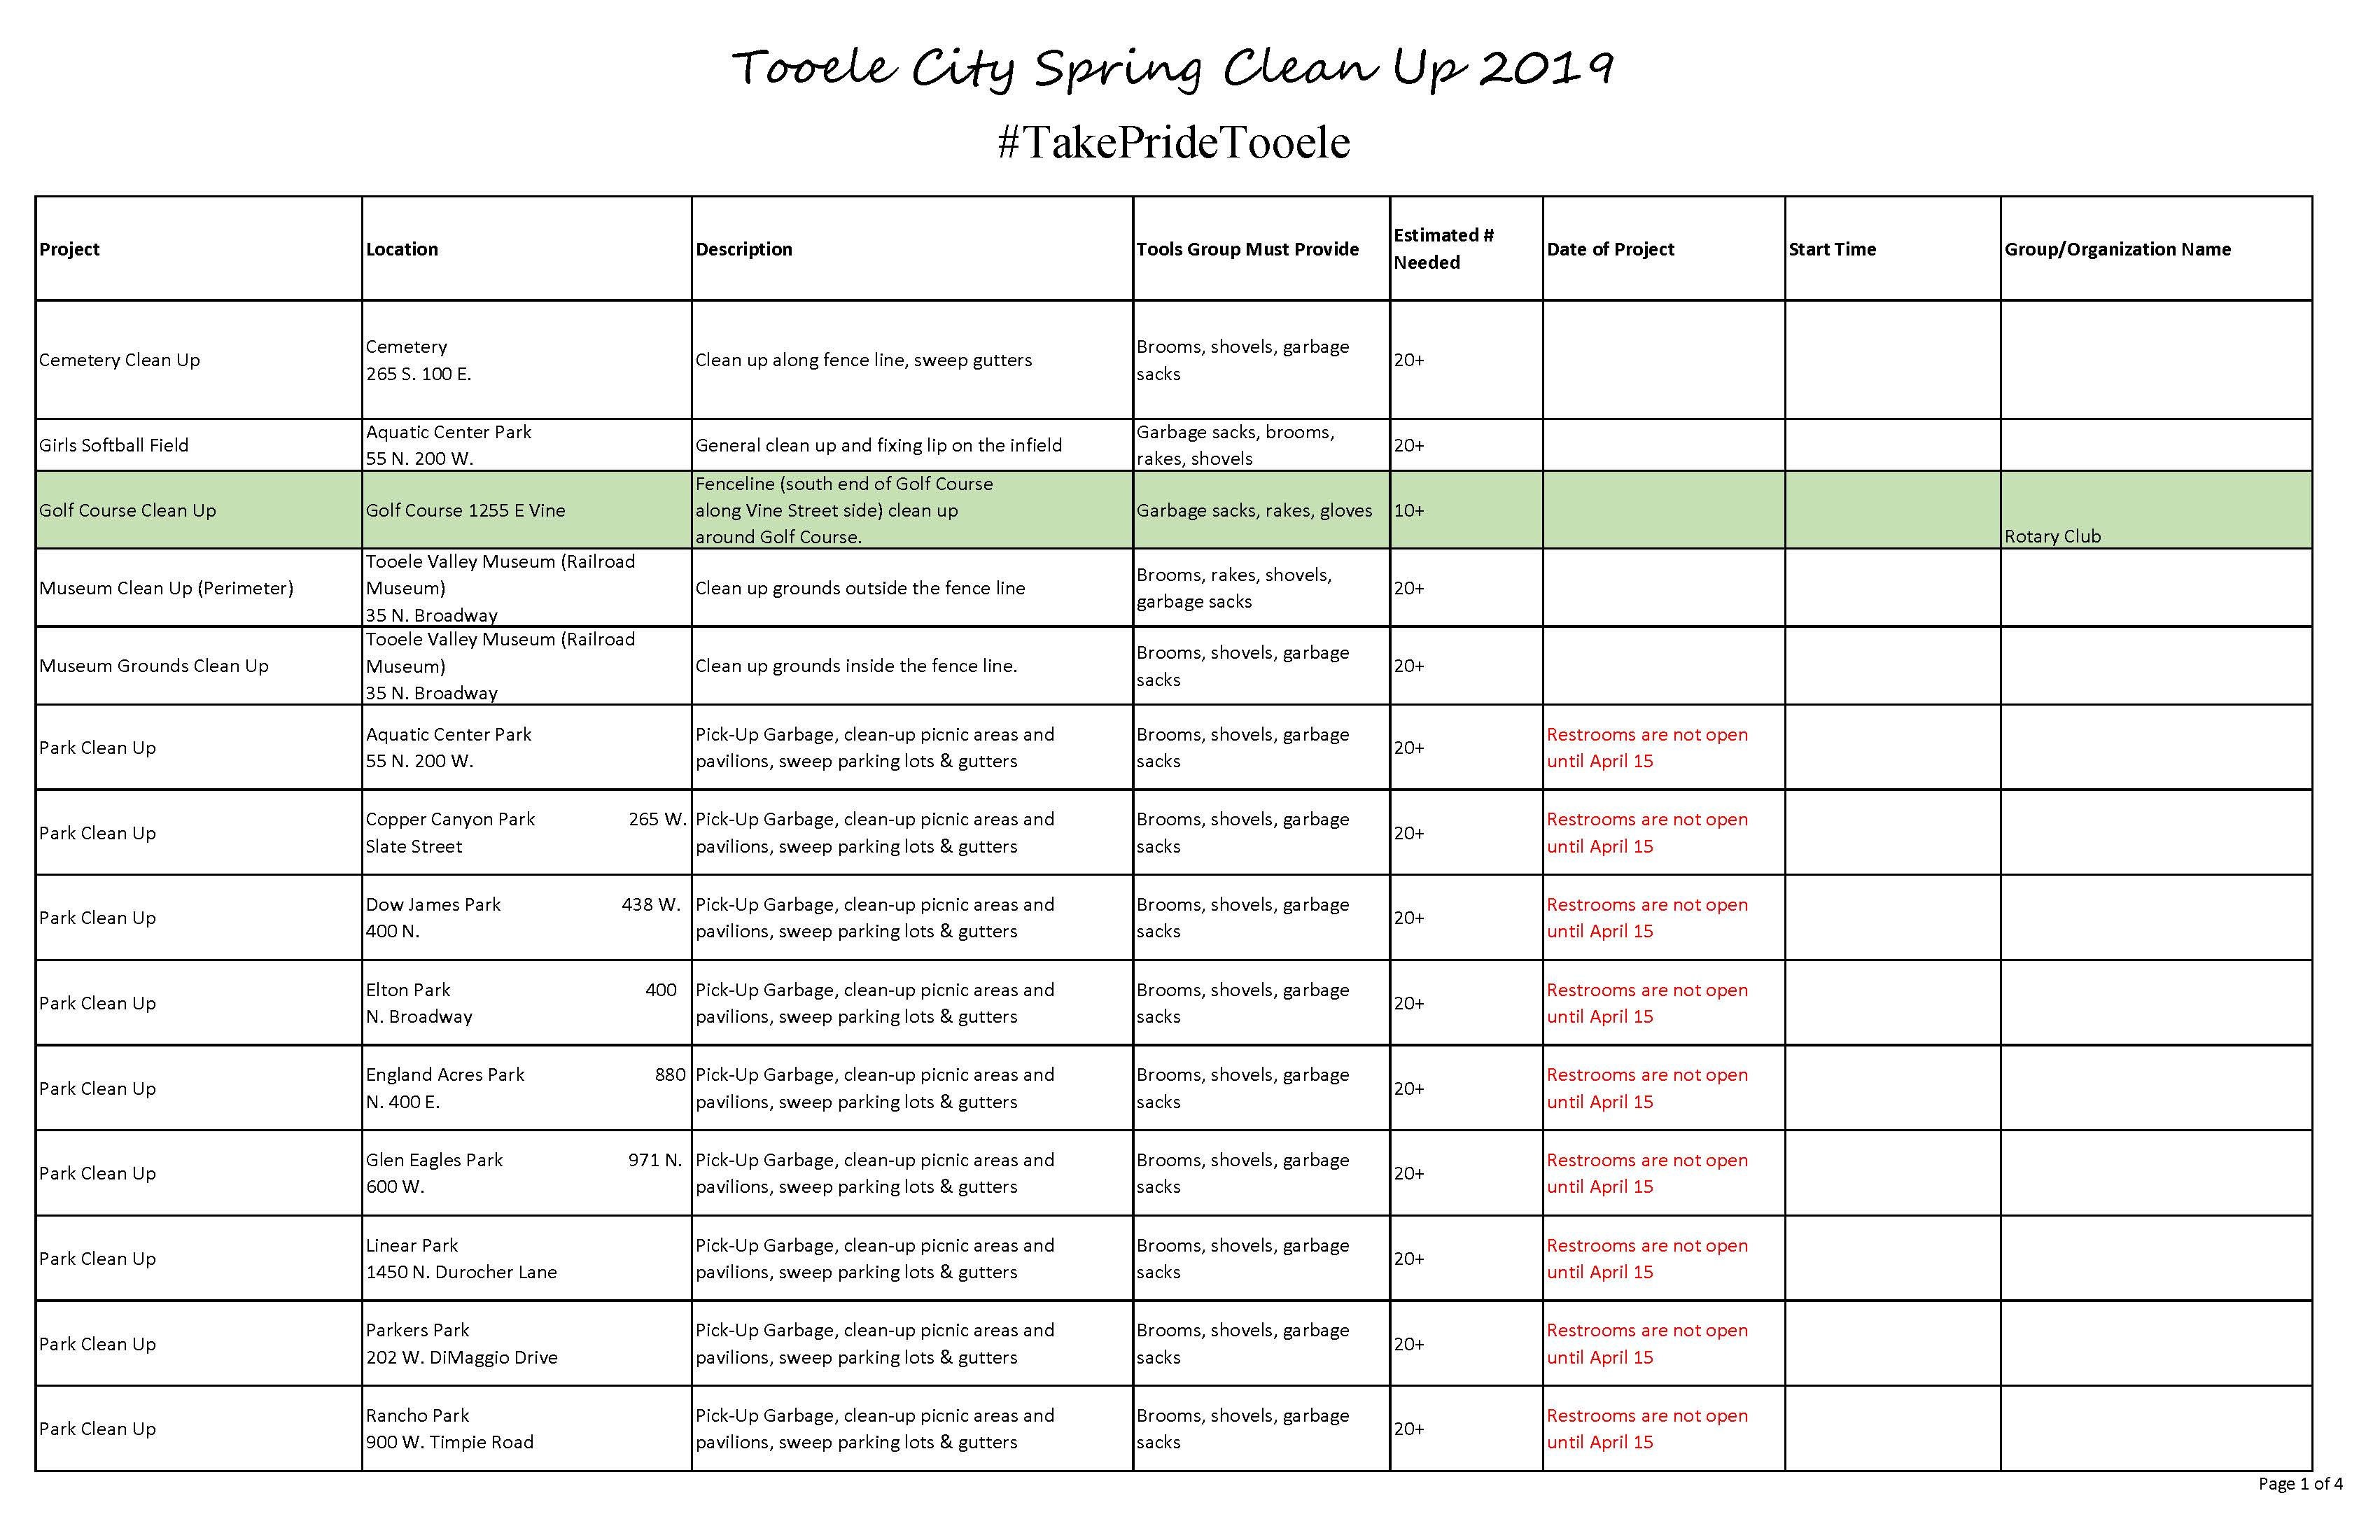 List of Projects for Spring Clean Up 2019 Updated 03-12-19